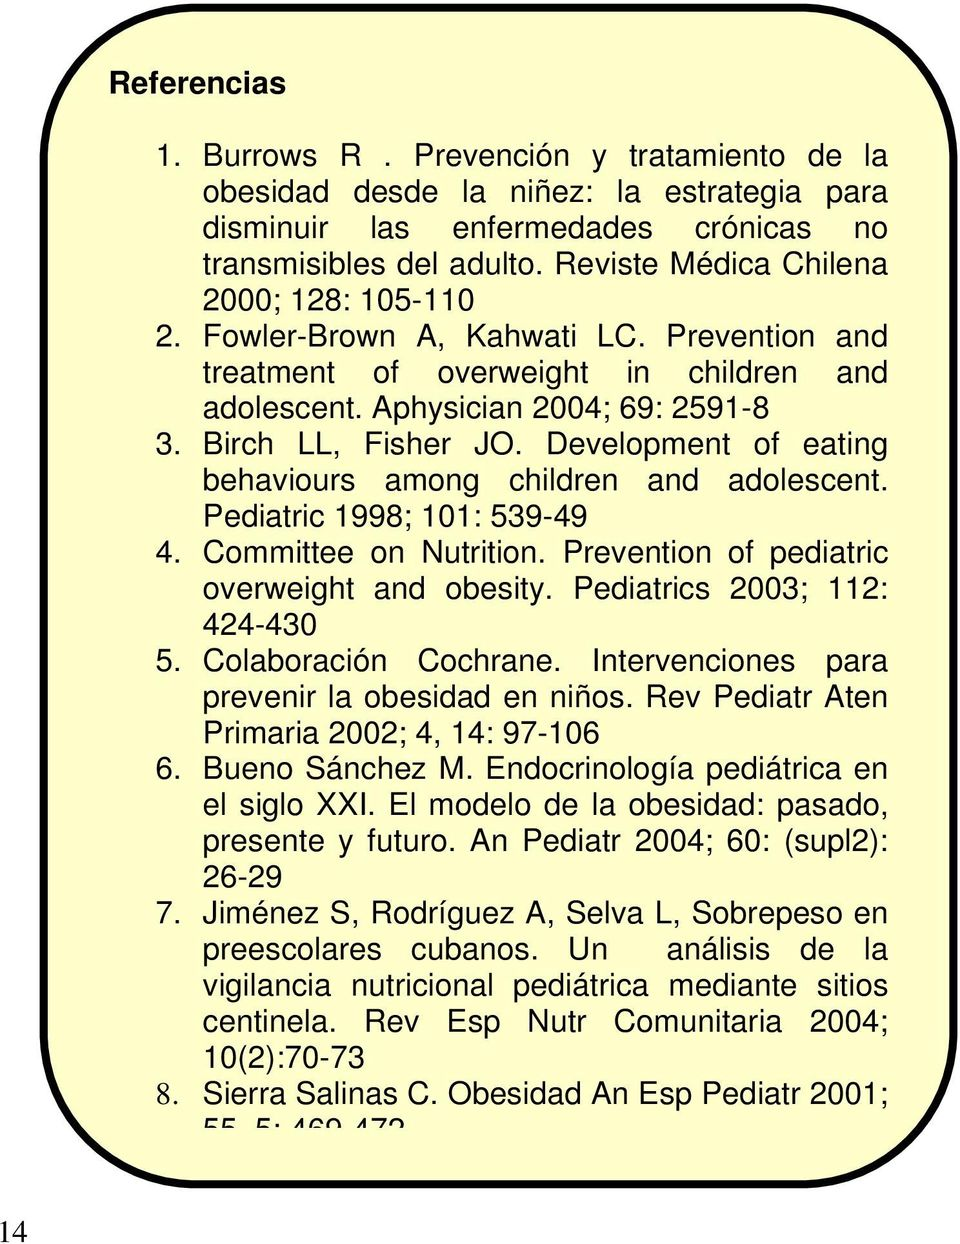 Development of eating behaviours among children and adolescent. Pediatric 1998; 101: 539-49 4. Committee on Nutrition. Prevention of pediatric overweight and obesity. Pediatrics 2003; 112: 424-430 5.